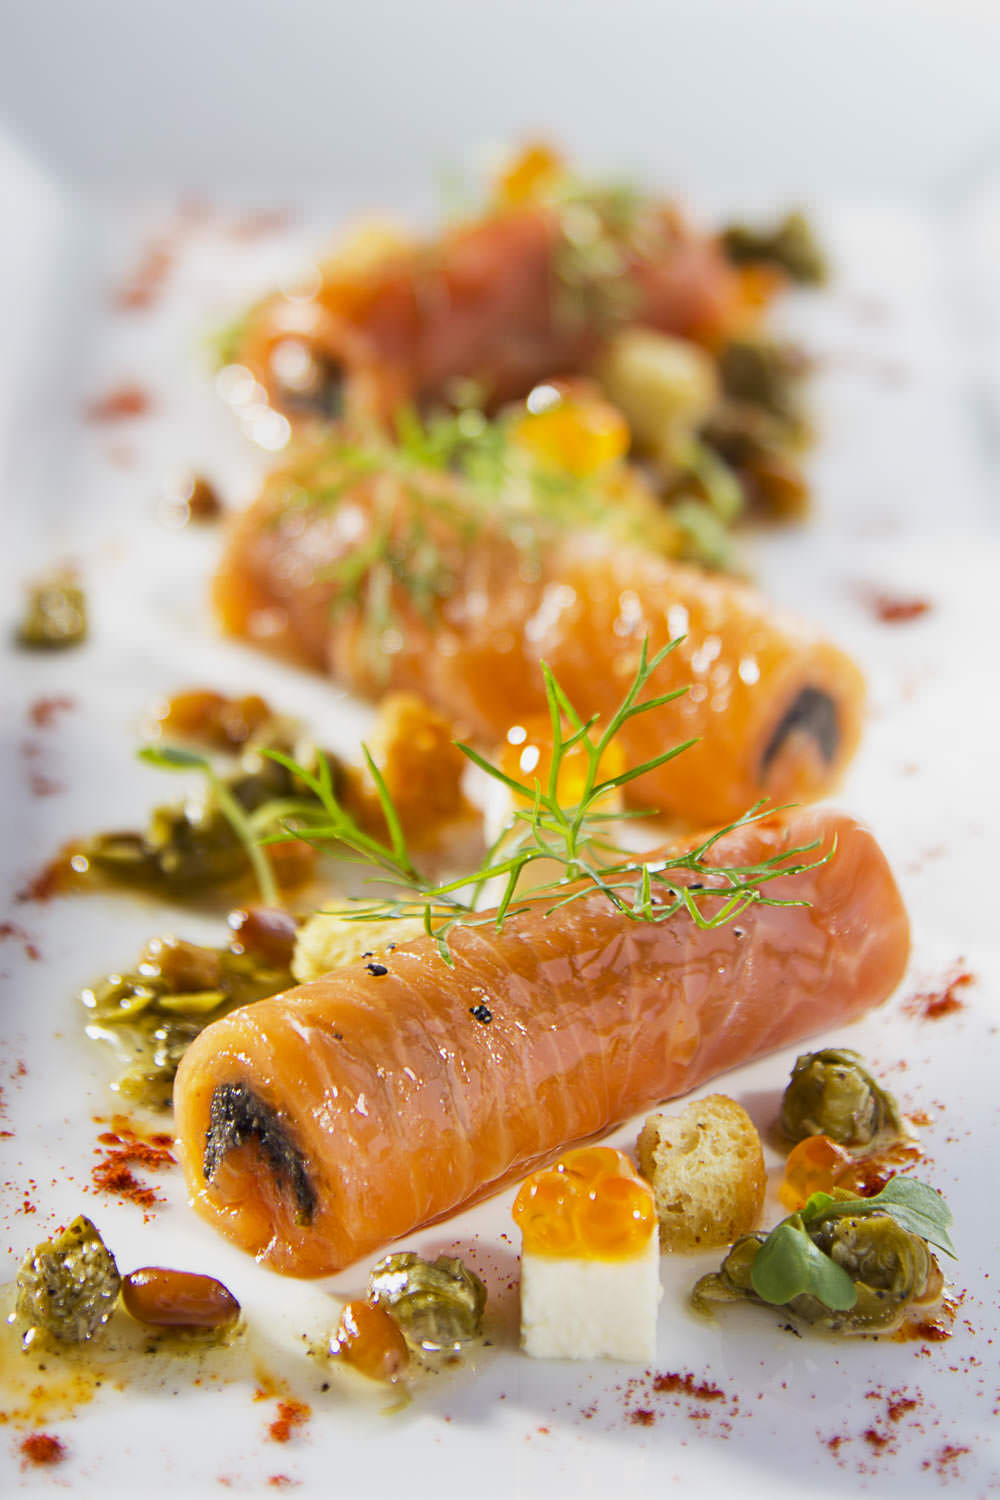 Salmon rolls at la Badiane fine dining | Hanoi Food Photographer